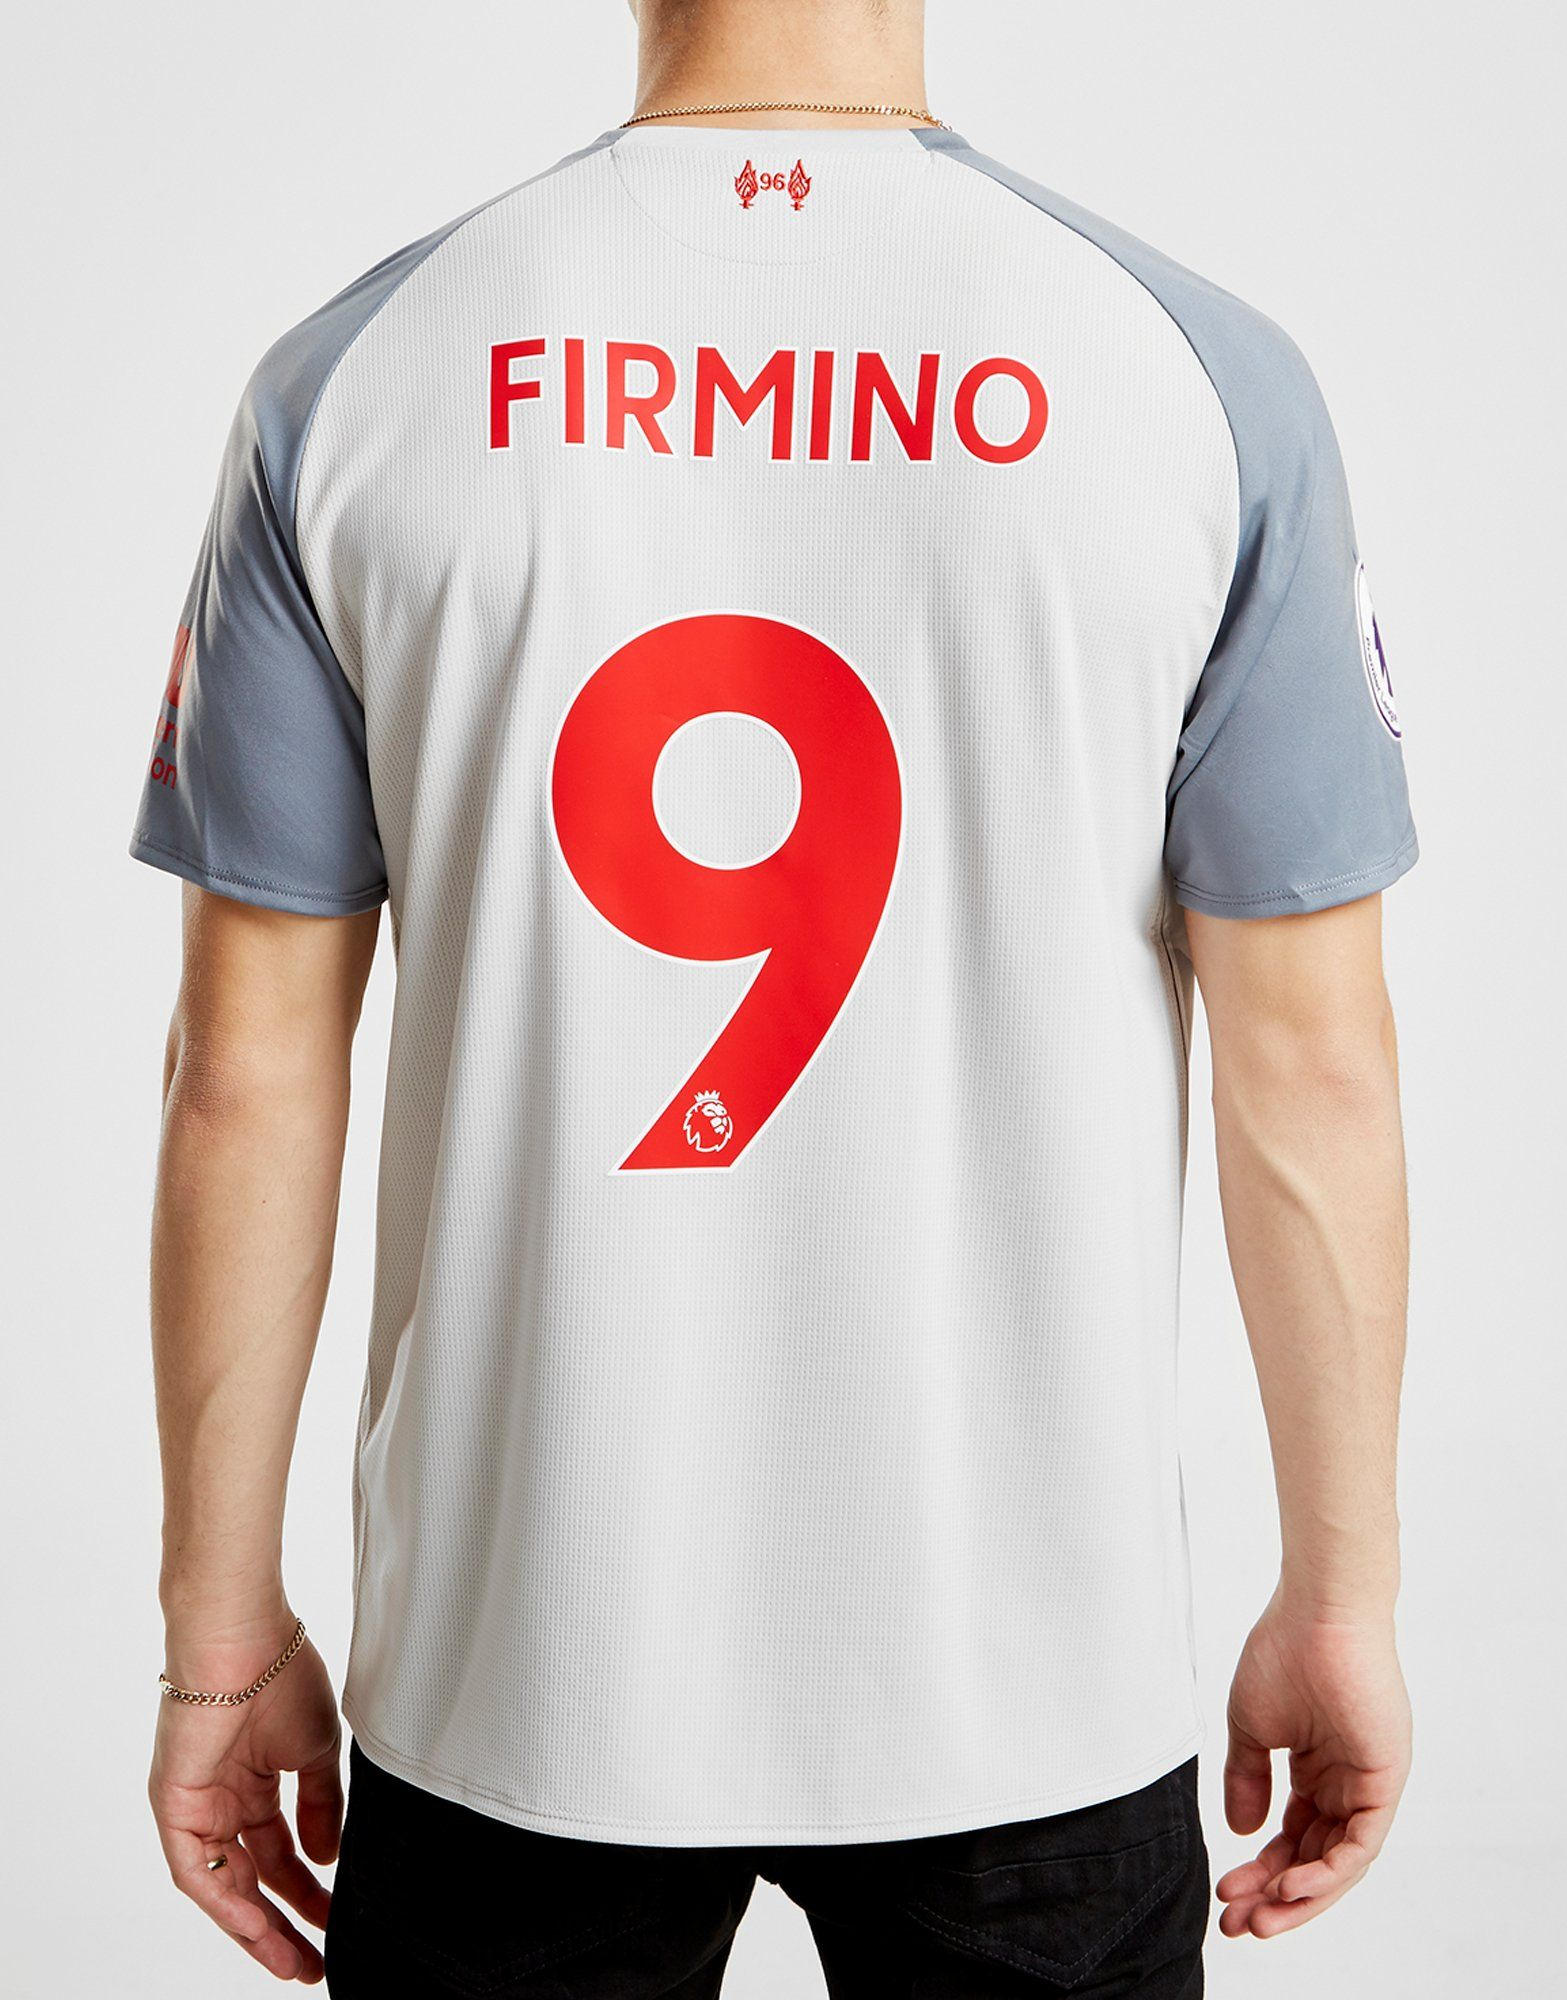 New Balance Liverpool FC 2018/19 Firmino #9 Third Shirt